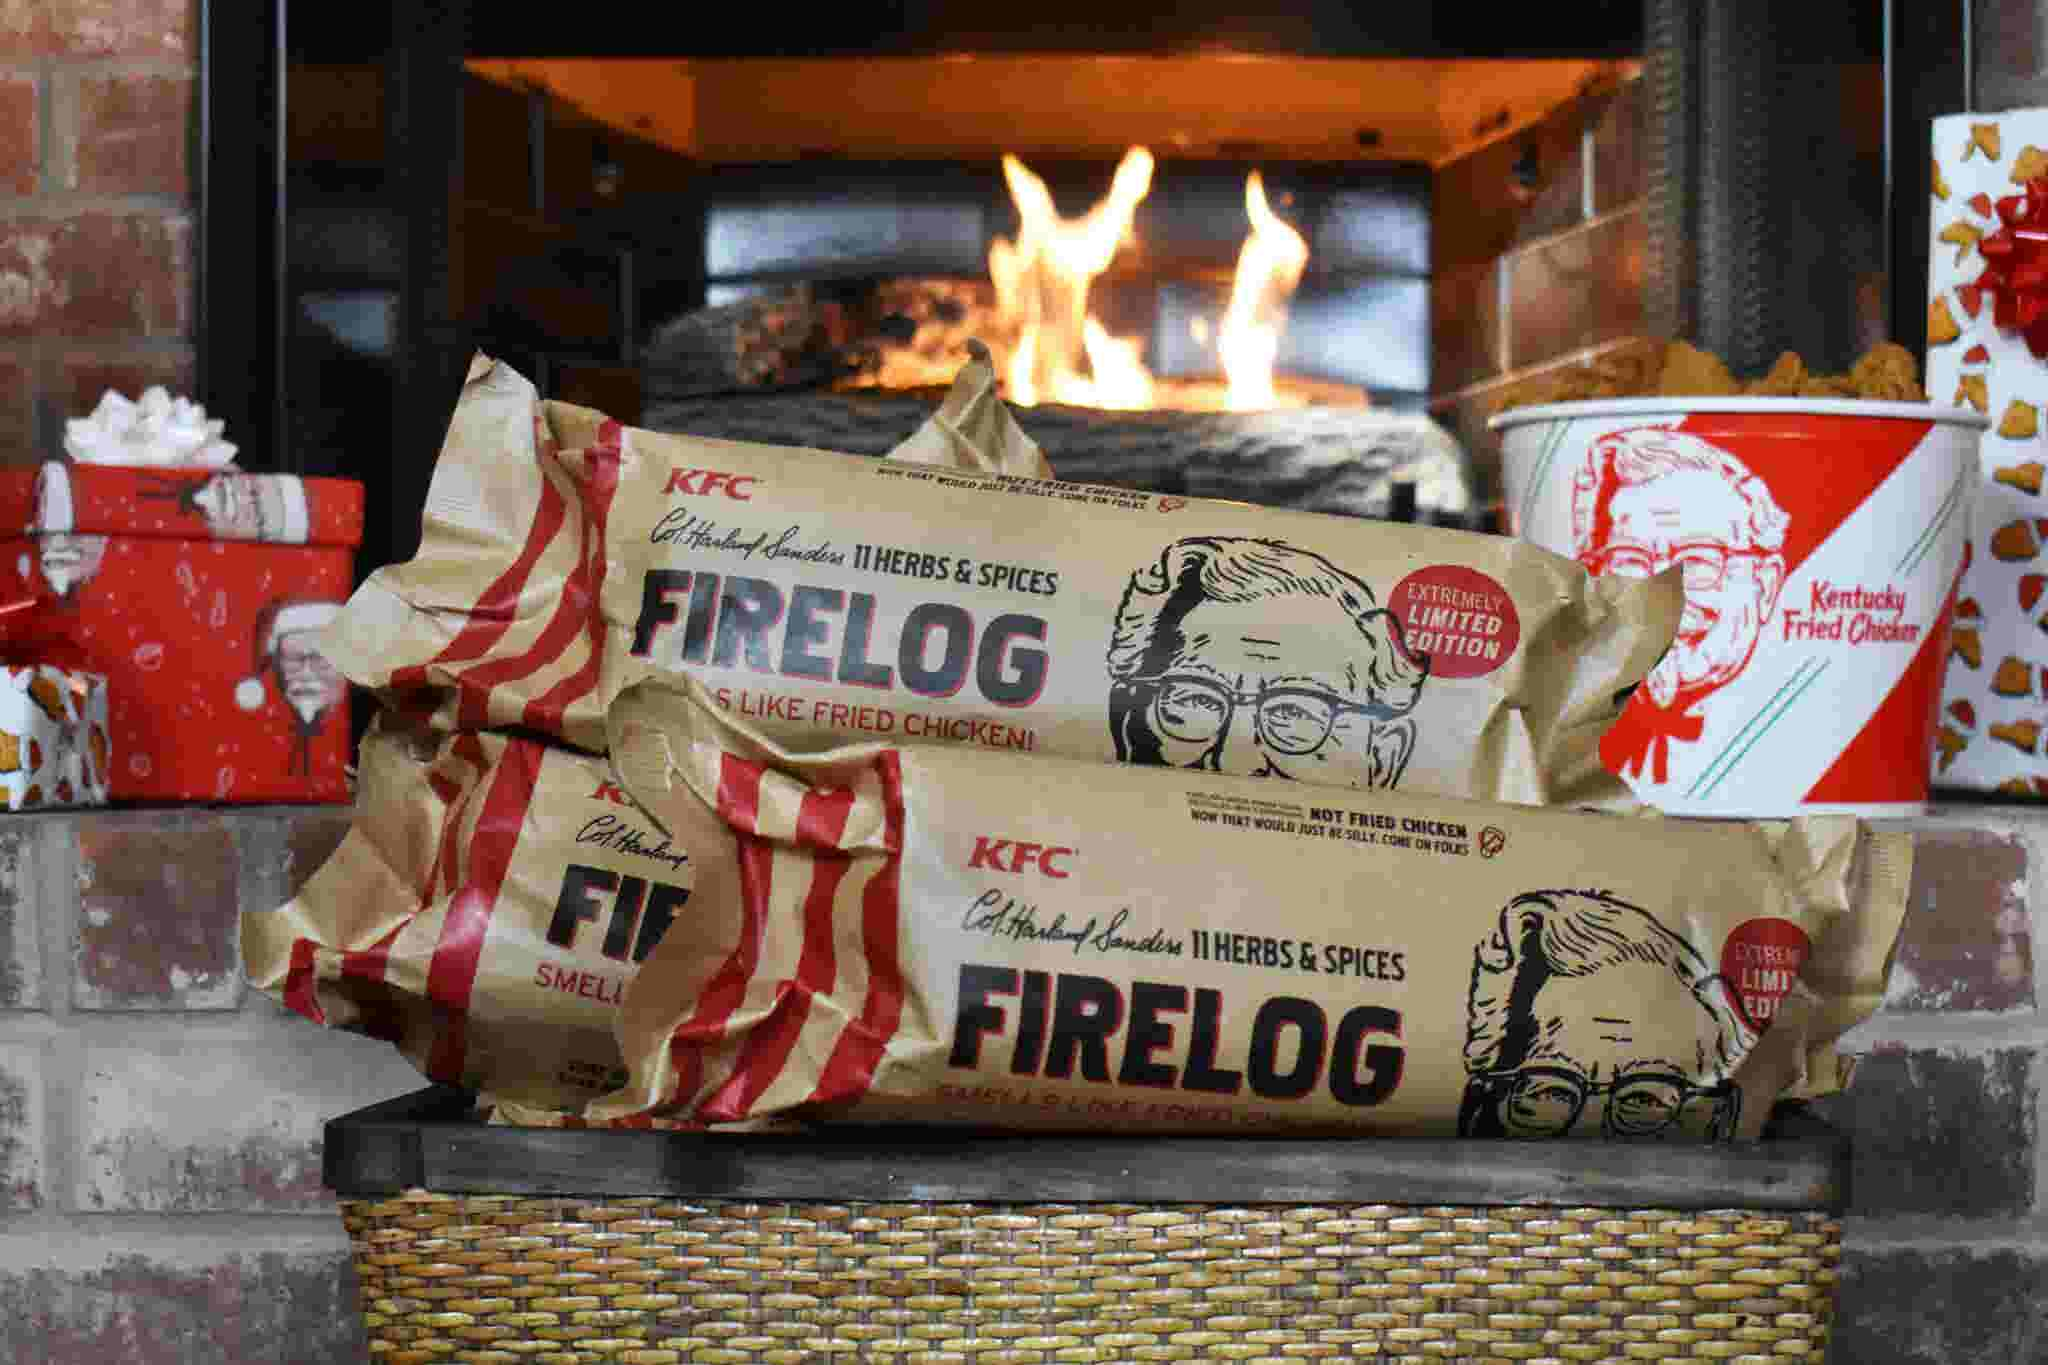 KFC firelog smells like its fried chicken available while supplies last